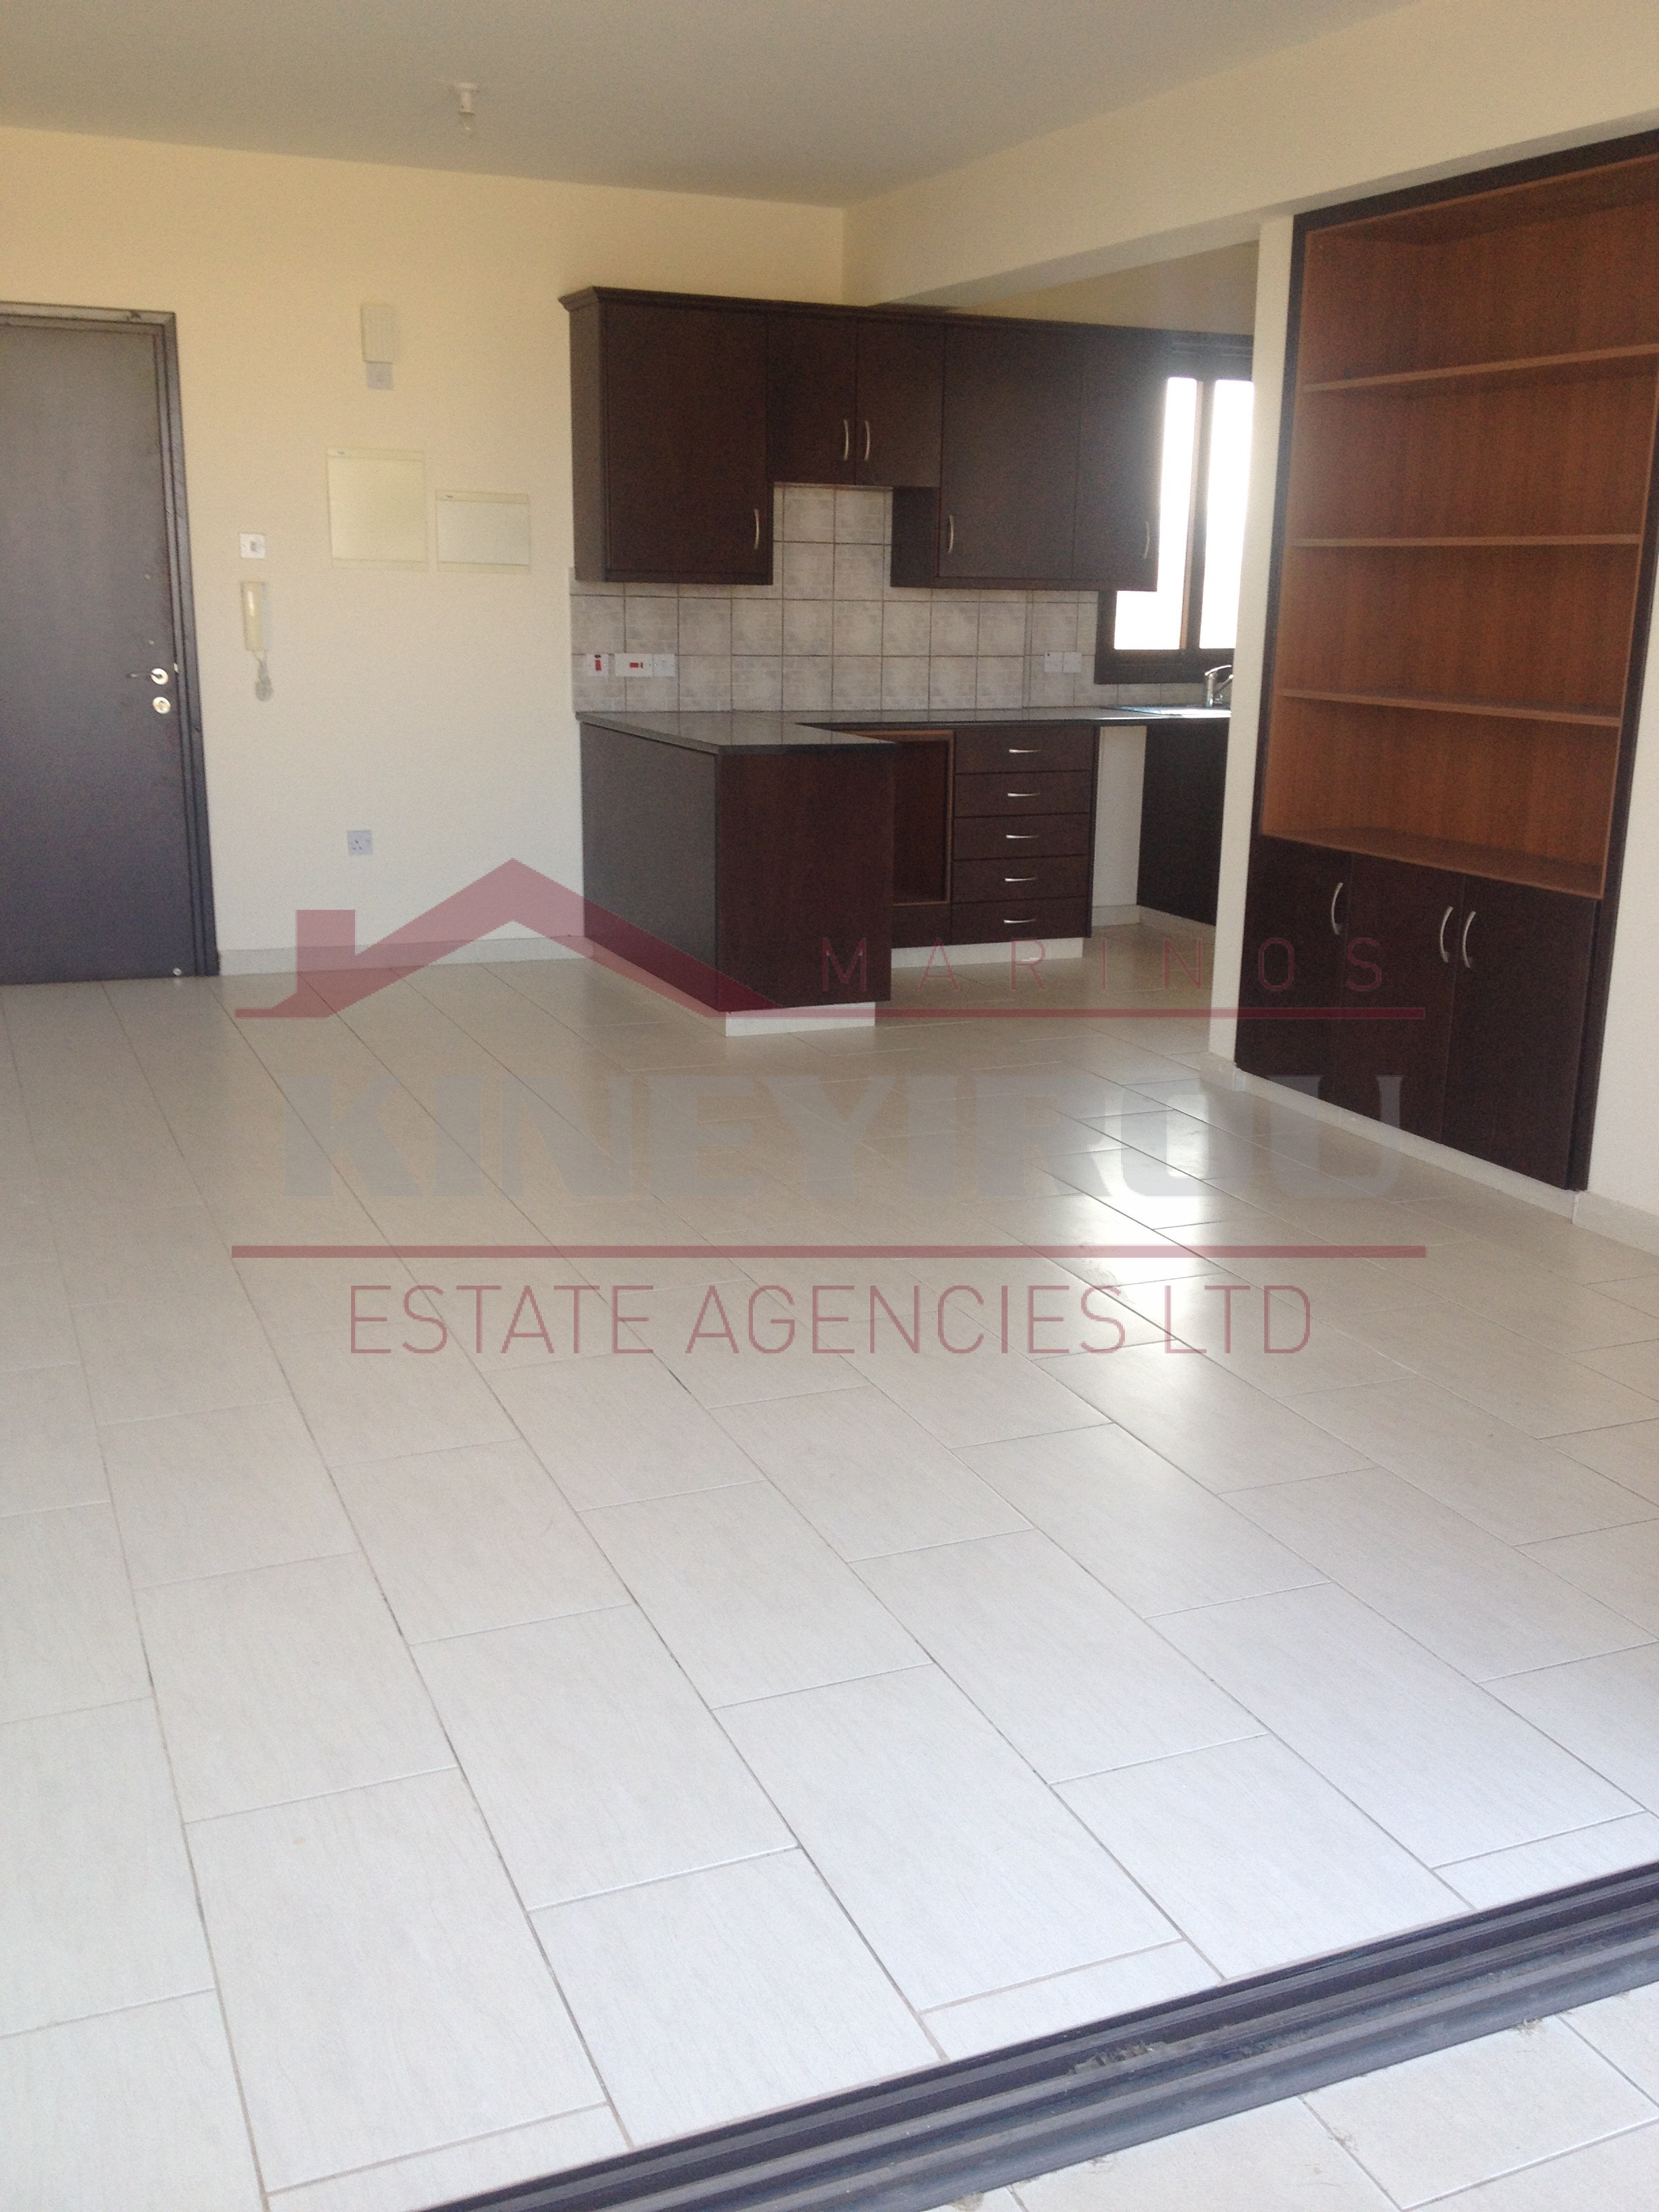 For Sale 3 Bedroom Pent House Apartment in Kamares, Larnaca